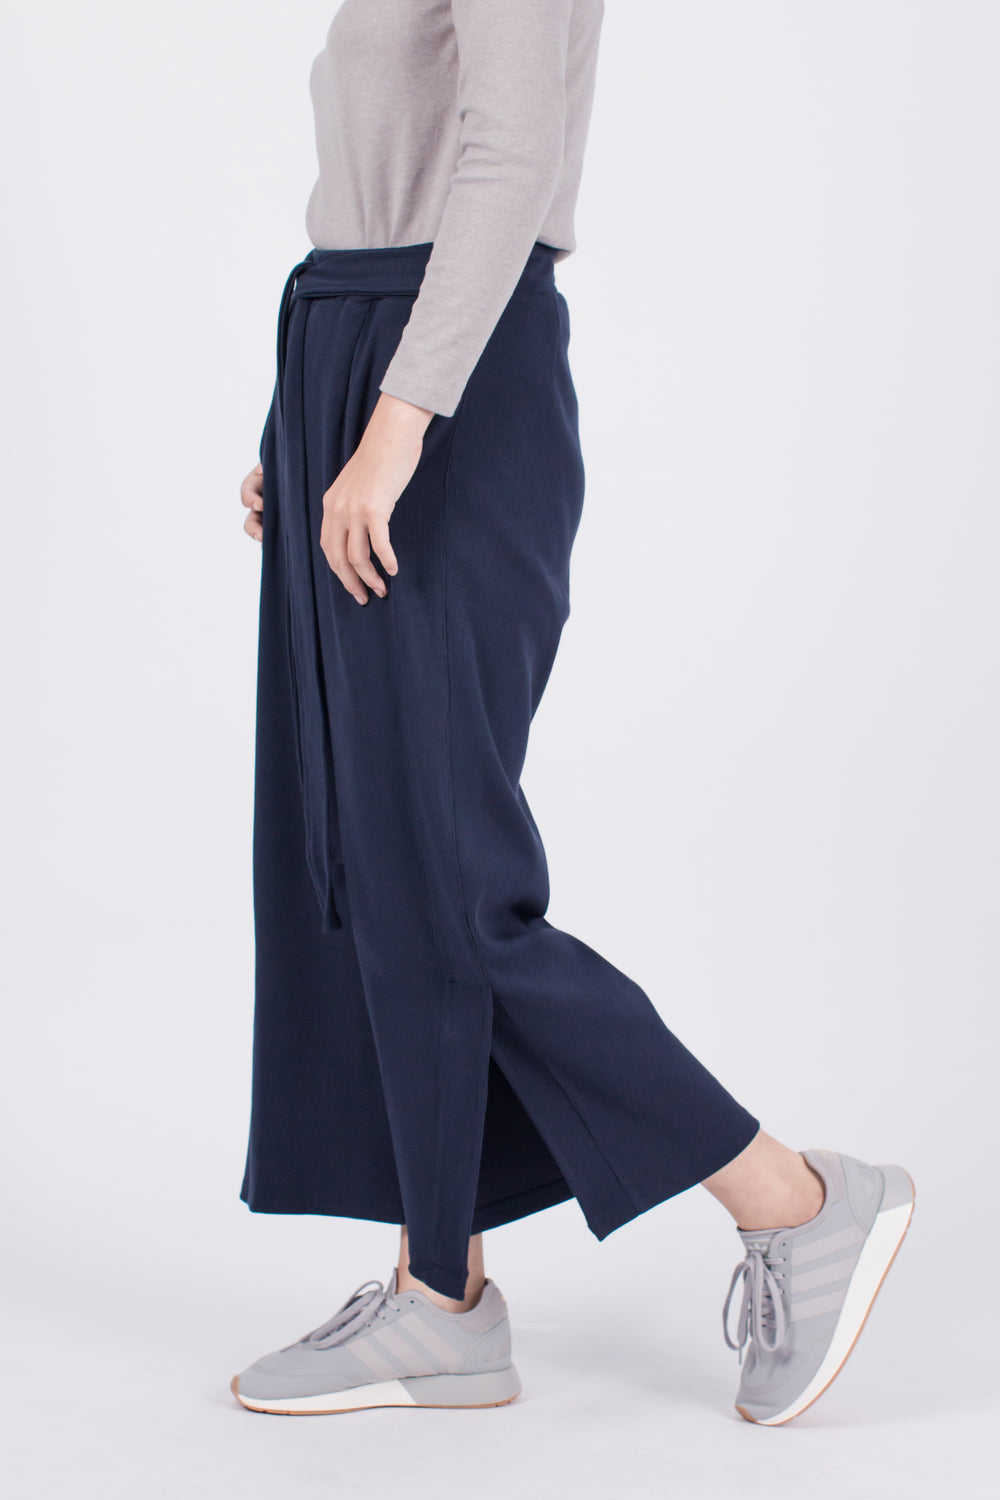 Muzca Sybil Side Slith Pants In Navy Modest Loose Fitting Women Trousers in Navy with Belt Sash, Pockets, Slit in 100% Cotton